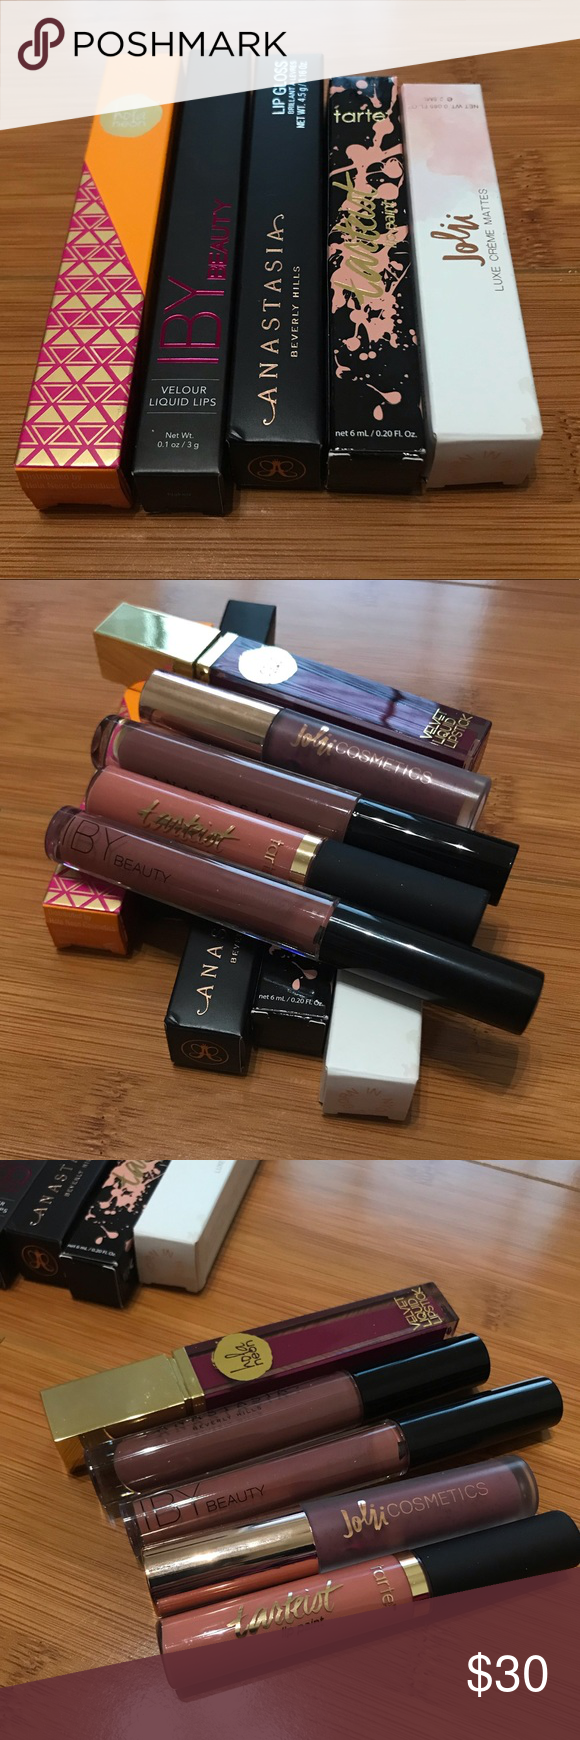 Lipsticks Haul All Not used Full size Jolii Cosmetics Luxe Creme Matte Cruelt... - Lipsticks Ha